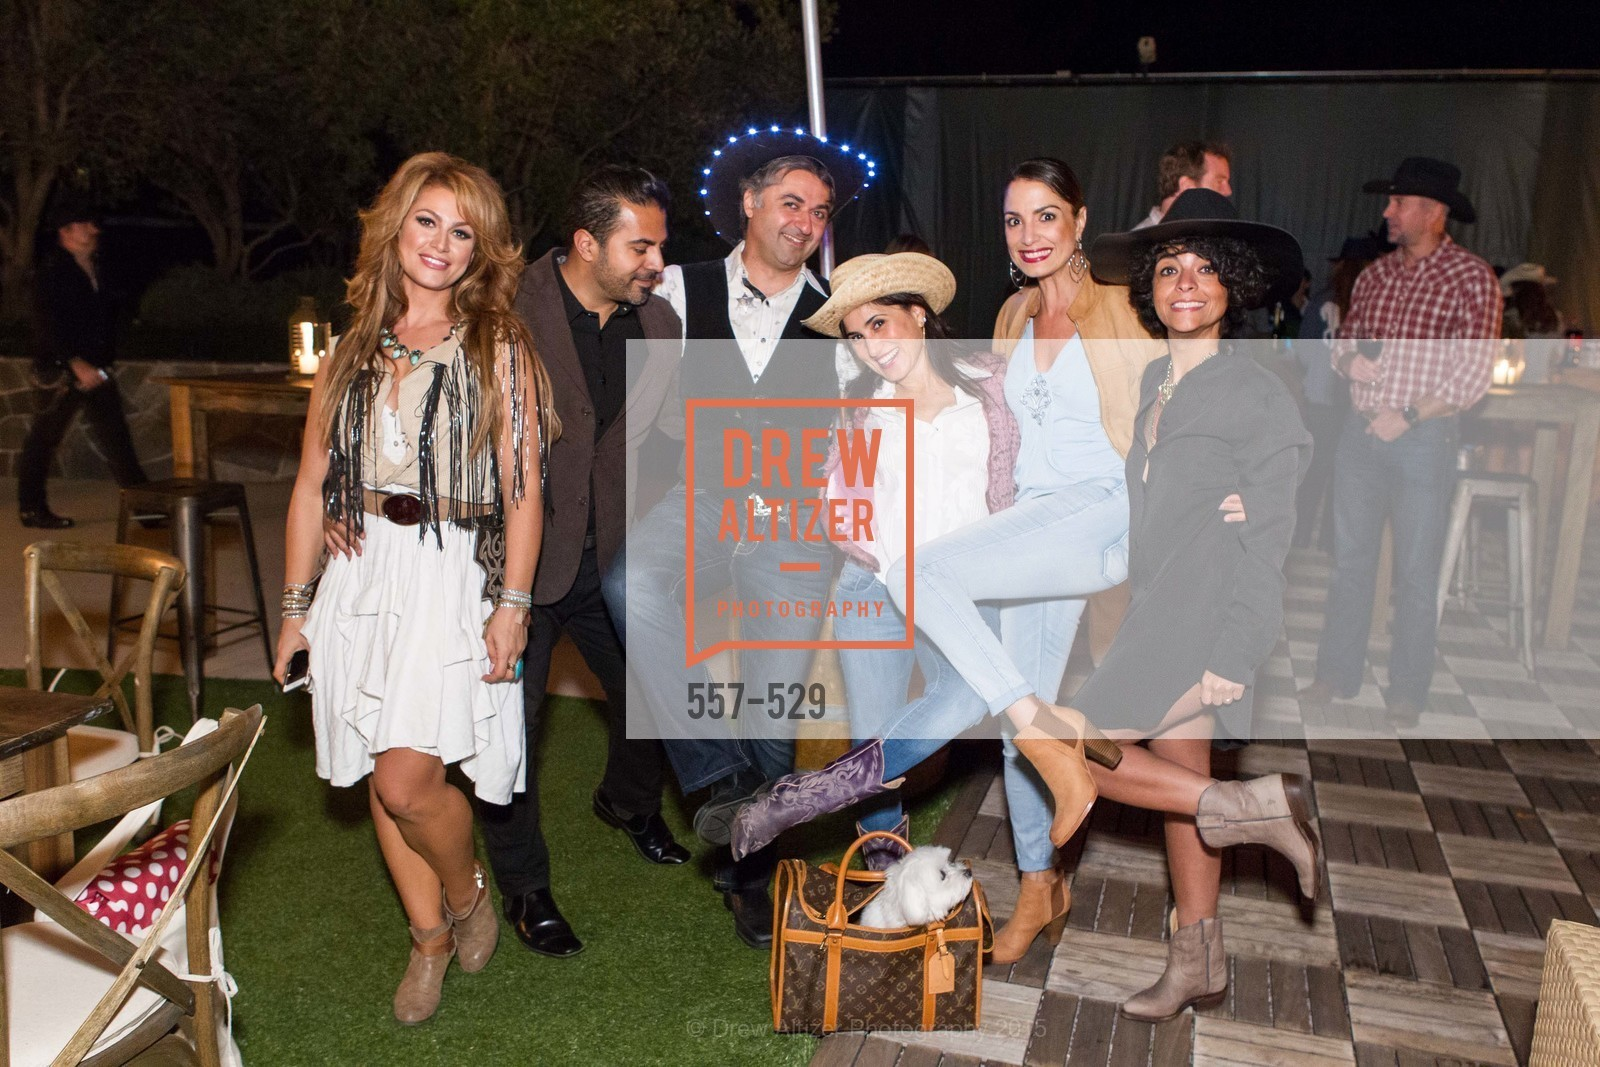 Asao Fard, Mike Fard, Hooman Khalili, Zem Joaquin, Shirin Aryanpour, Golnaz Shahmirzadi, Hooman's Birthday Celebration At Bay Club Ross Valley, Bay Club. 235 Bon Air Rd, November 14th, 2015,Drew Altizer, Drew Altizer Photography, full-service agency, private events, San Francisco photographer, photographer california